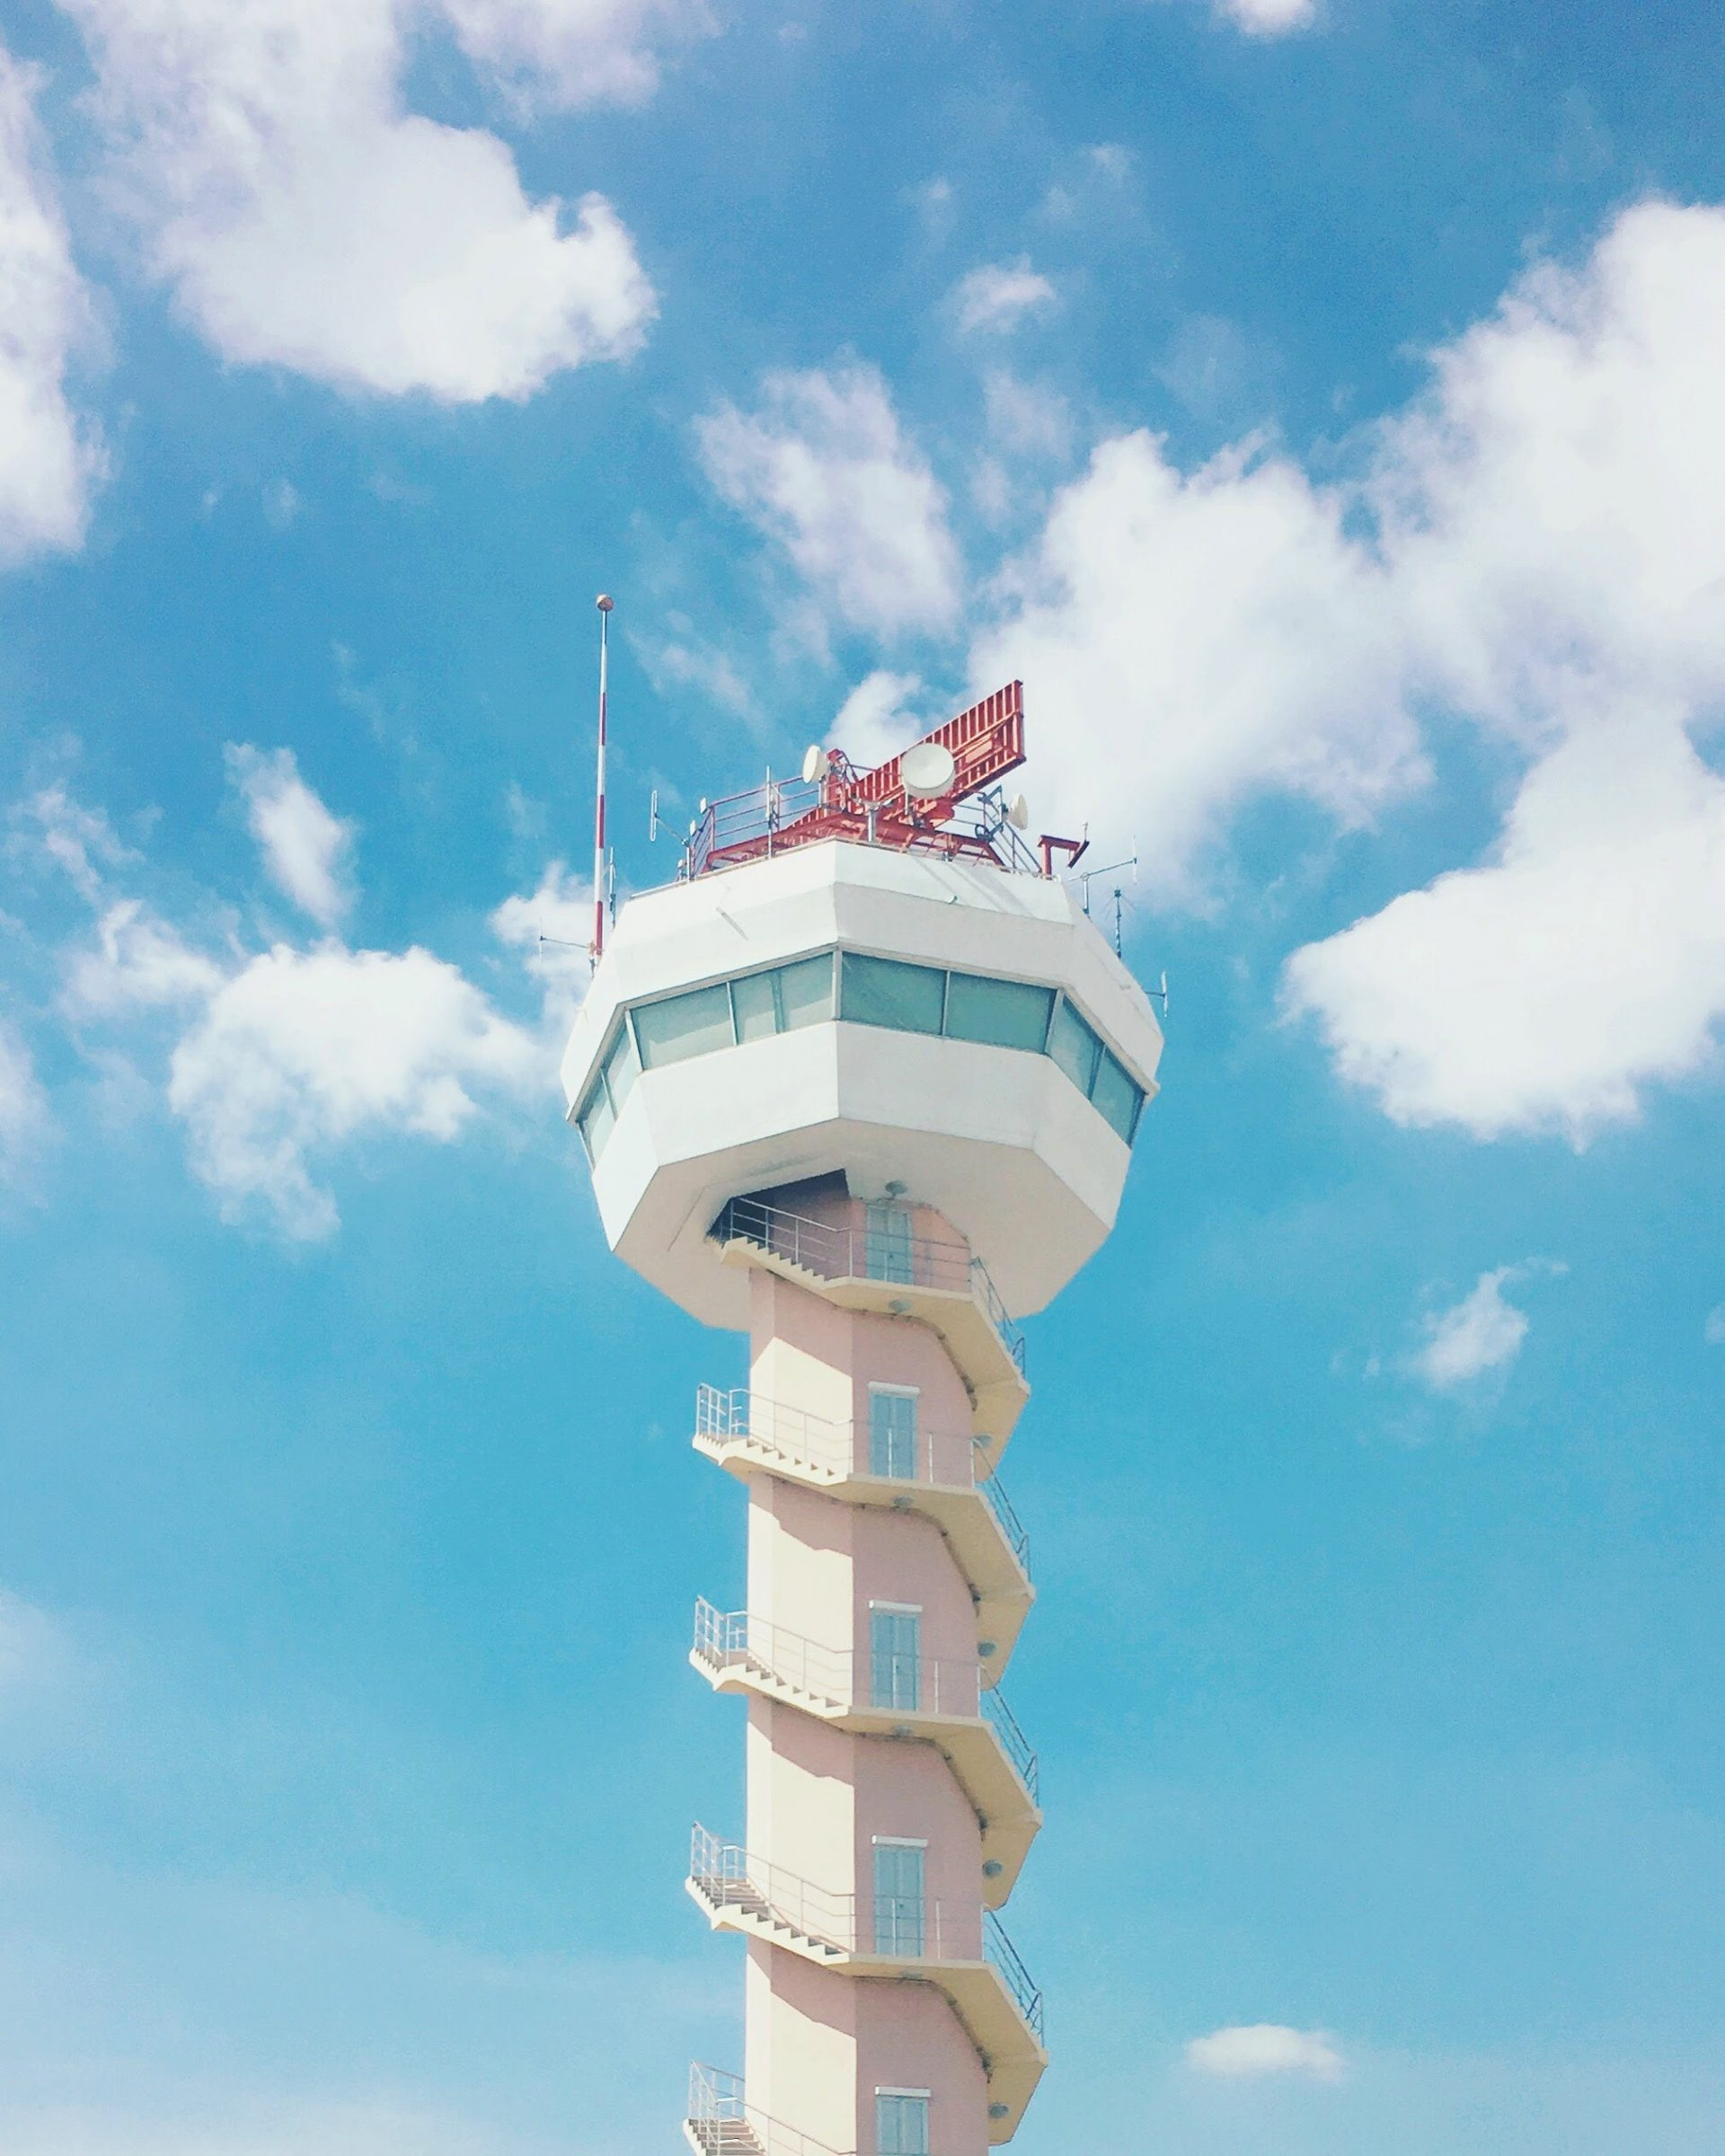 Air traffic control tower against sky background at airport